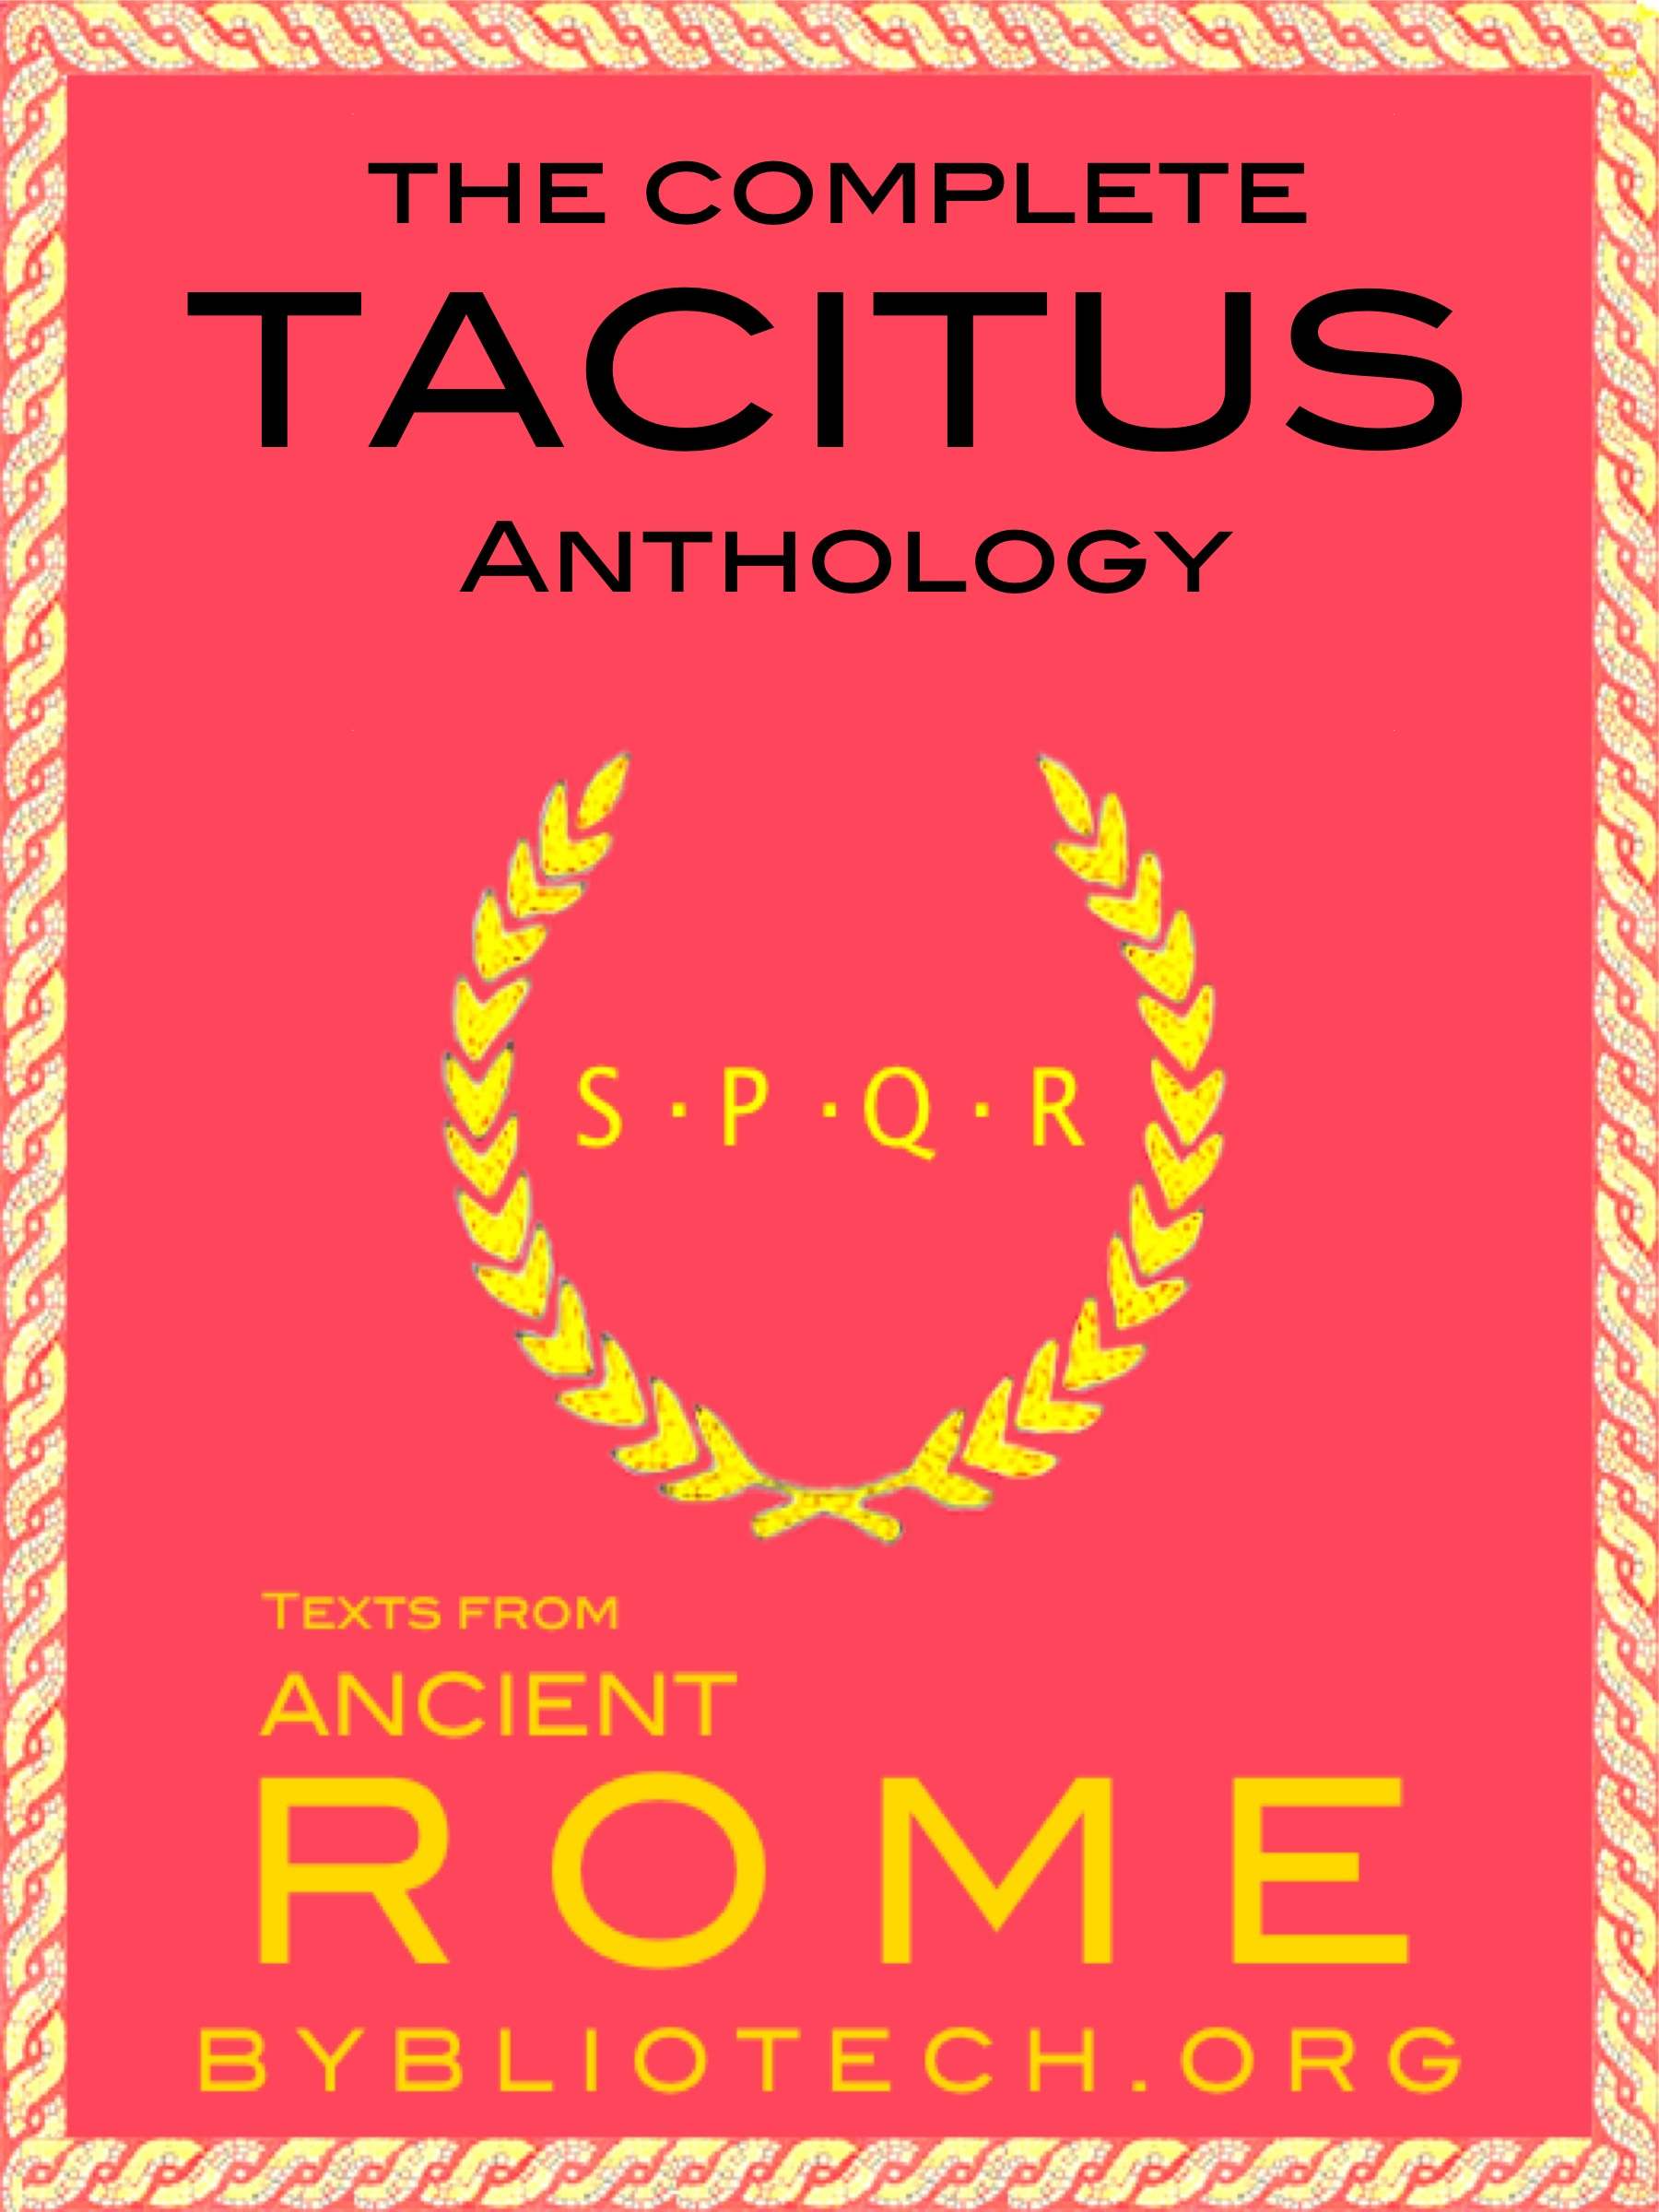 The Complete Tacitus Anthology